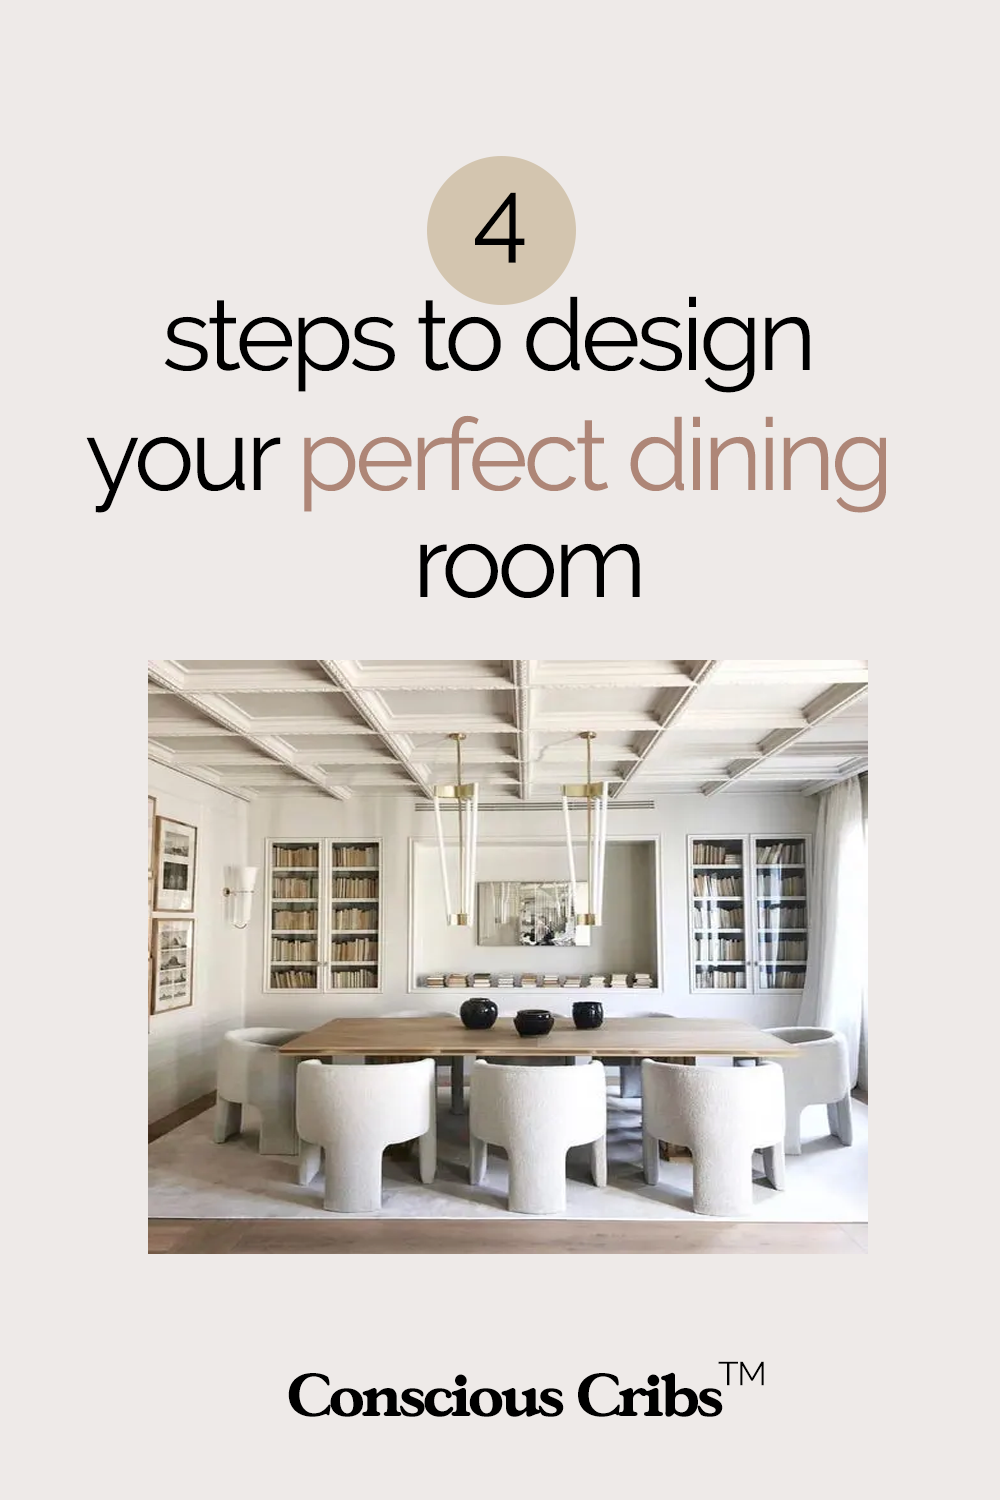 Dining room design is more important than ever as it's not about what we eat, how we eat but rather where we eat.There is something special about setting aside time in our busy lives to be present with family and friends and the best place for this is the dining room. #diningroom #diningroomdecor #diningroominspiration #dreamdiningroom #homedecor #interiordesign #diningroomstyling #diningtabledecor #diningroomlighting #diningroomdesignideas #luxuryhome